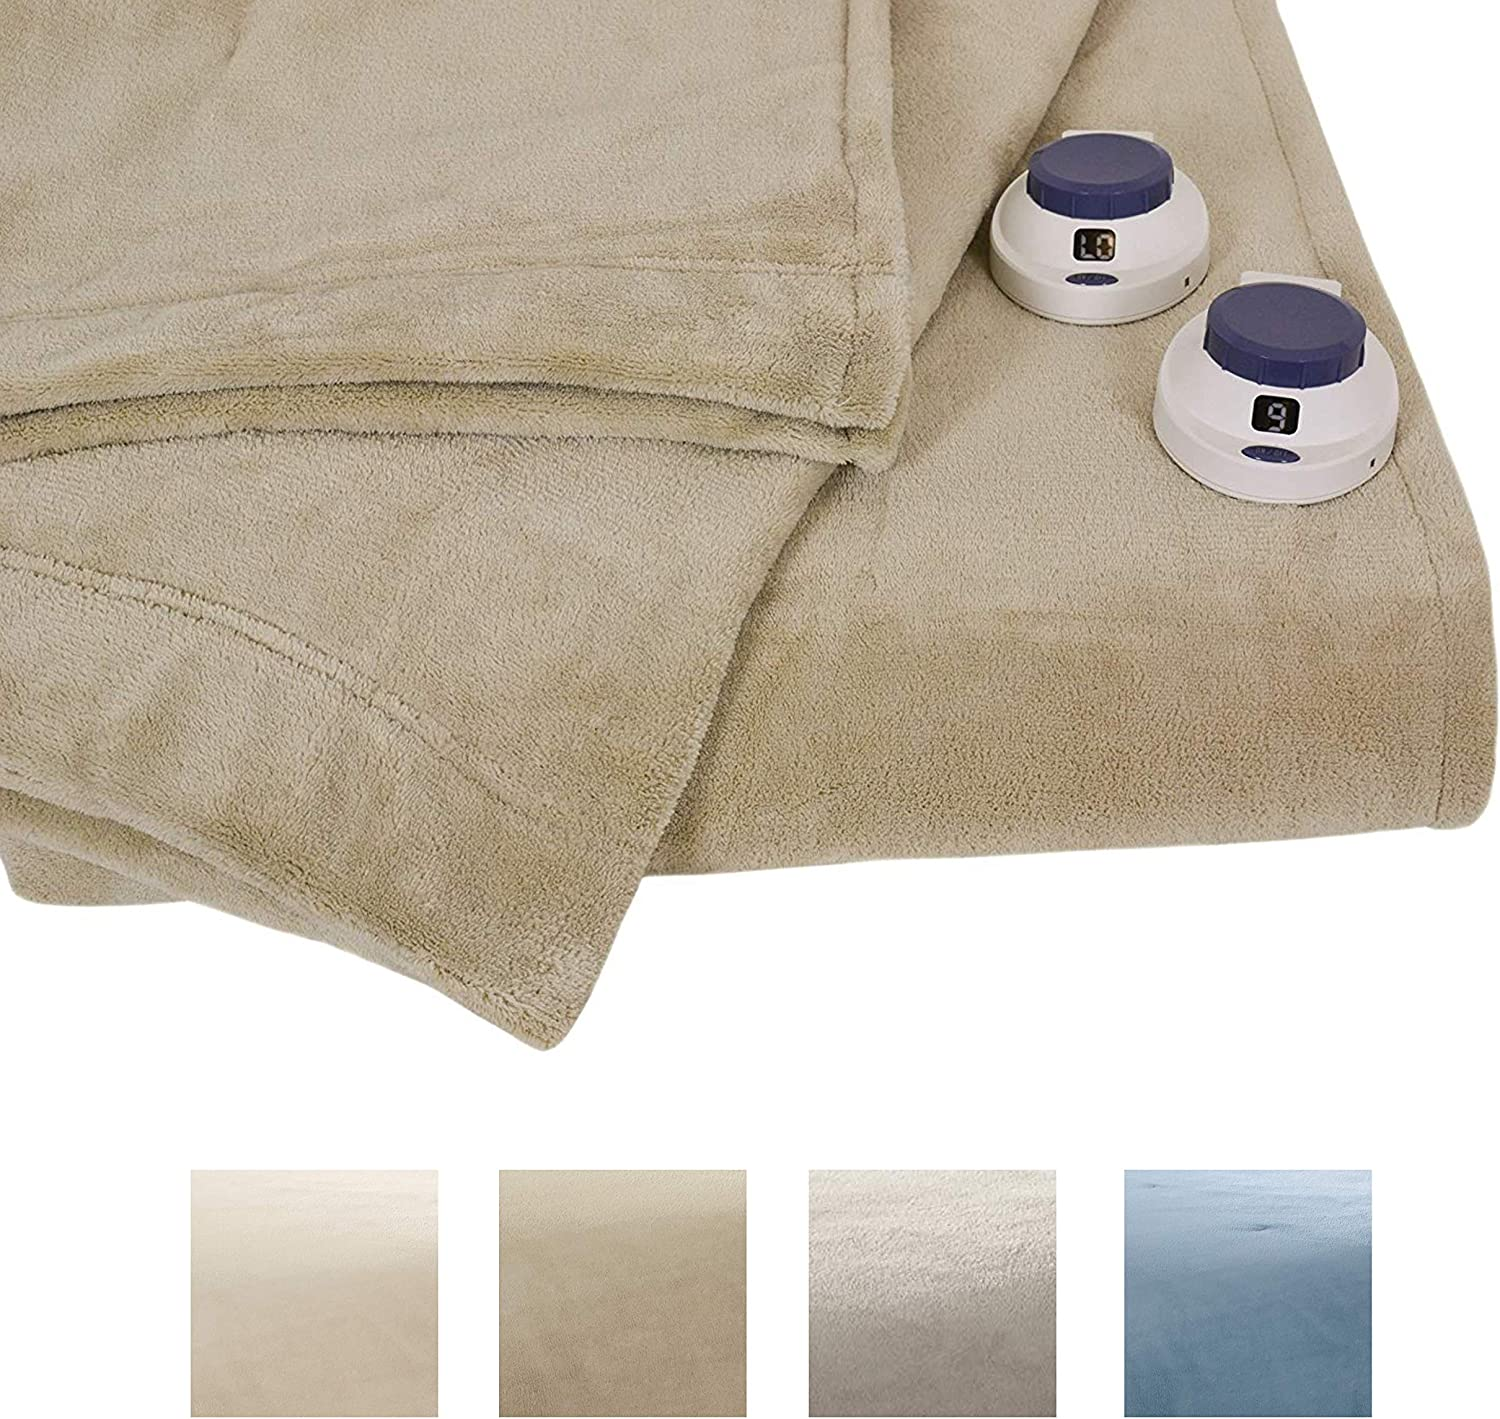 Serta | Luxe Plush Fleece Heated Electric Blanket with Safe & Warm Low-Voltage Technology Queen Pearl: Home & Kitchen